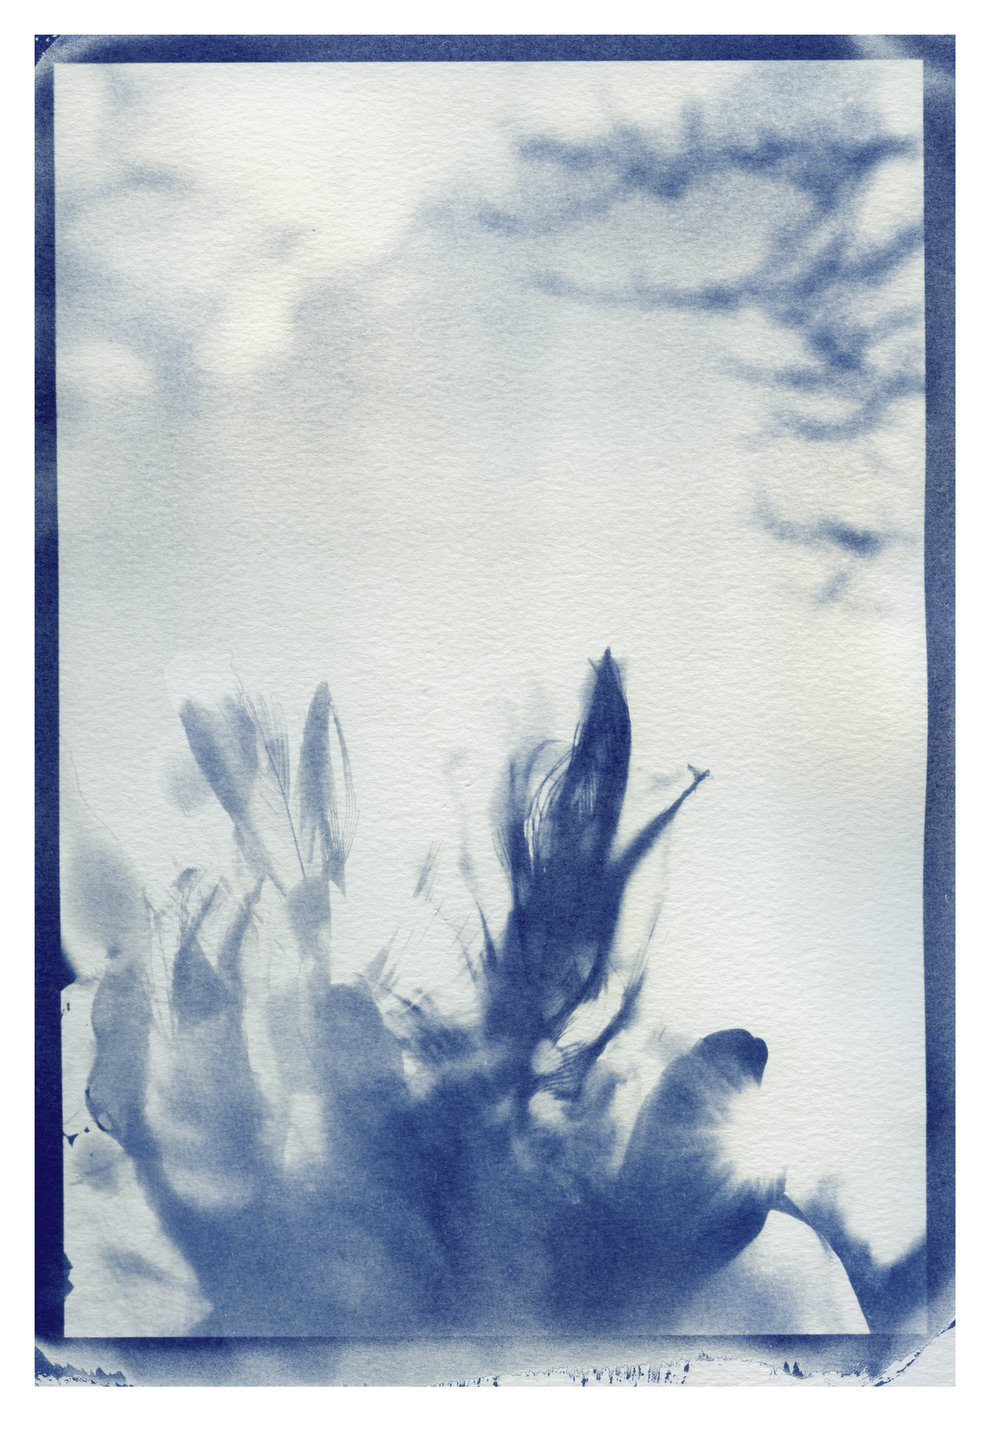 cyanotype by second year SPAO student Vivian Tors